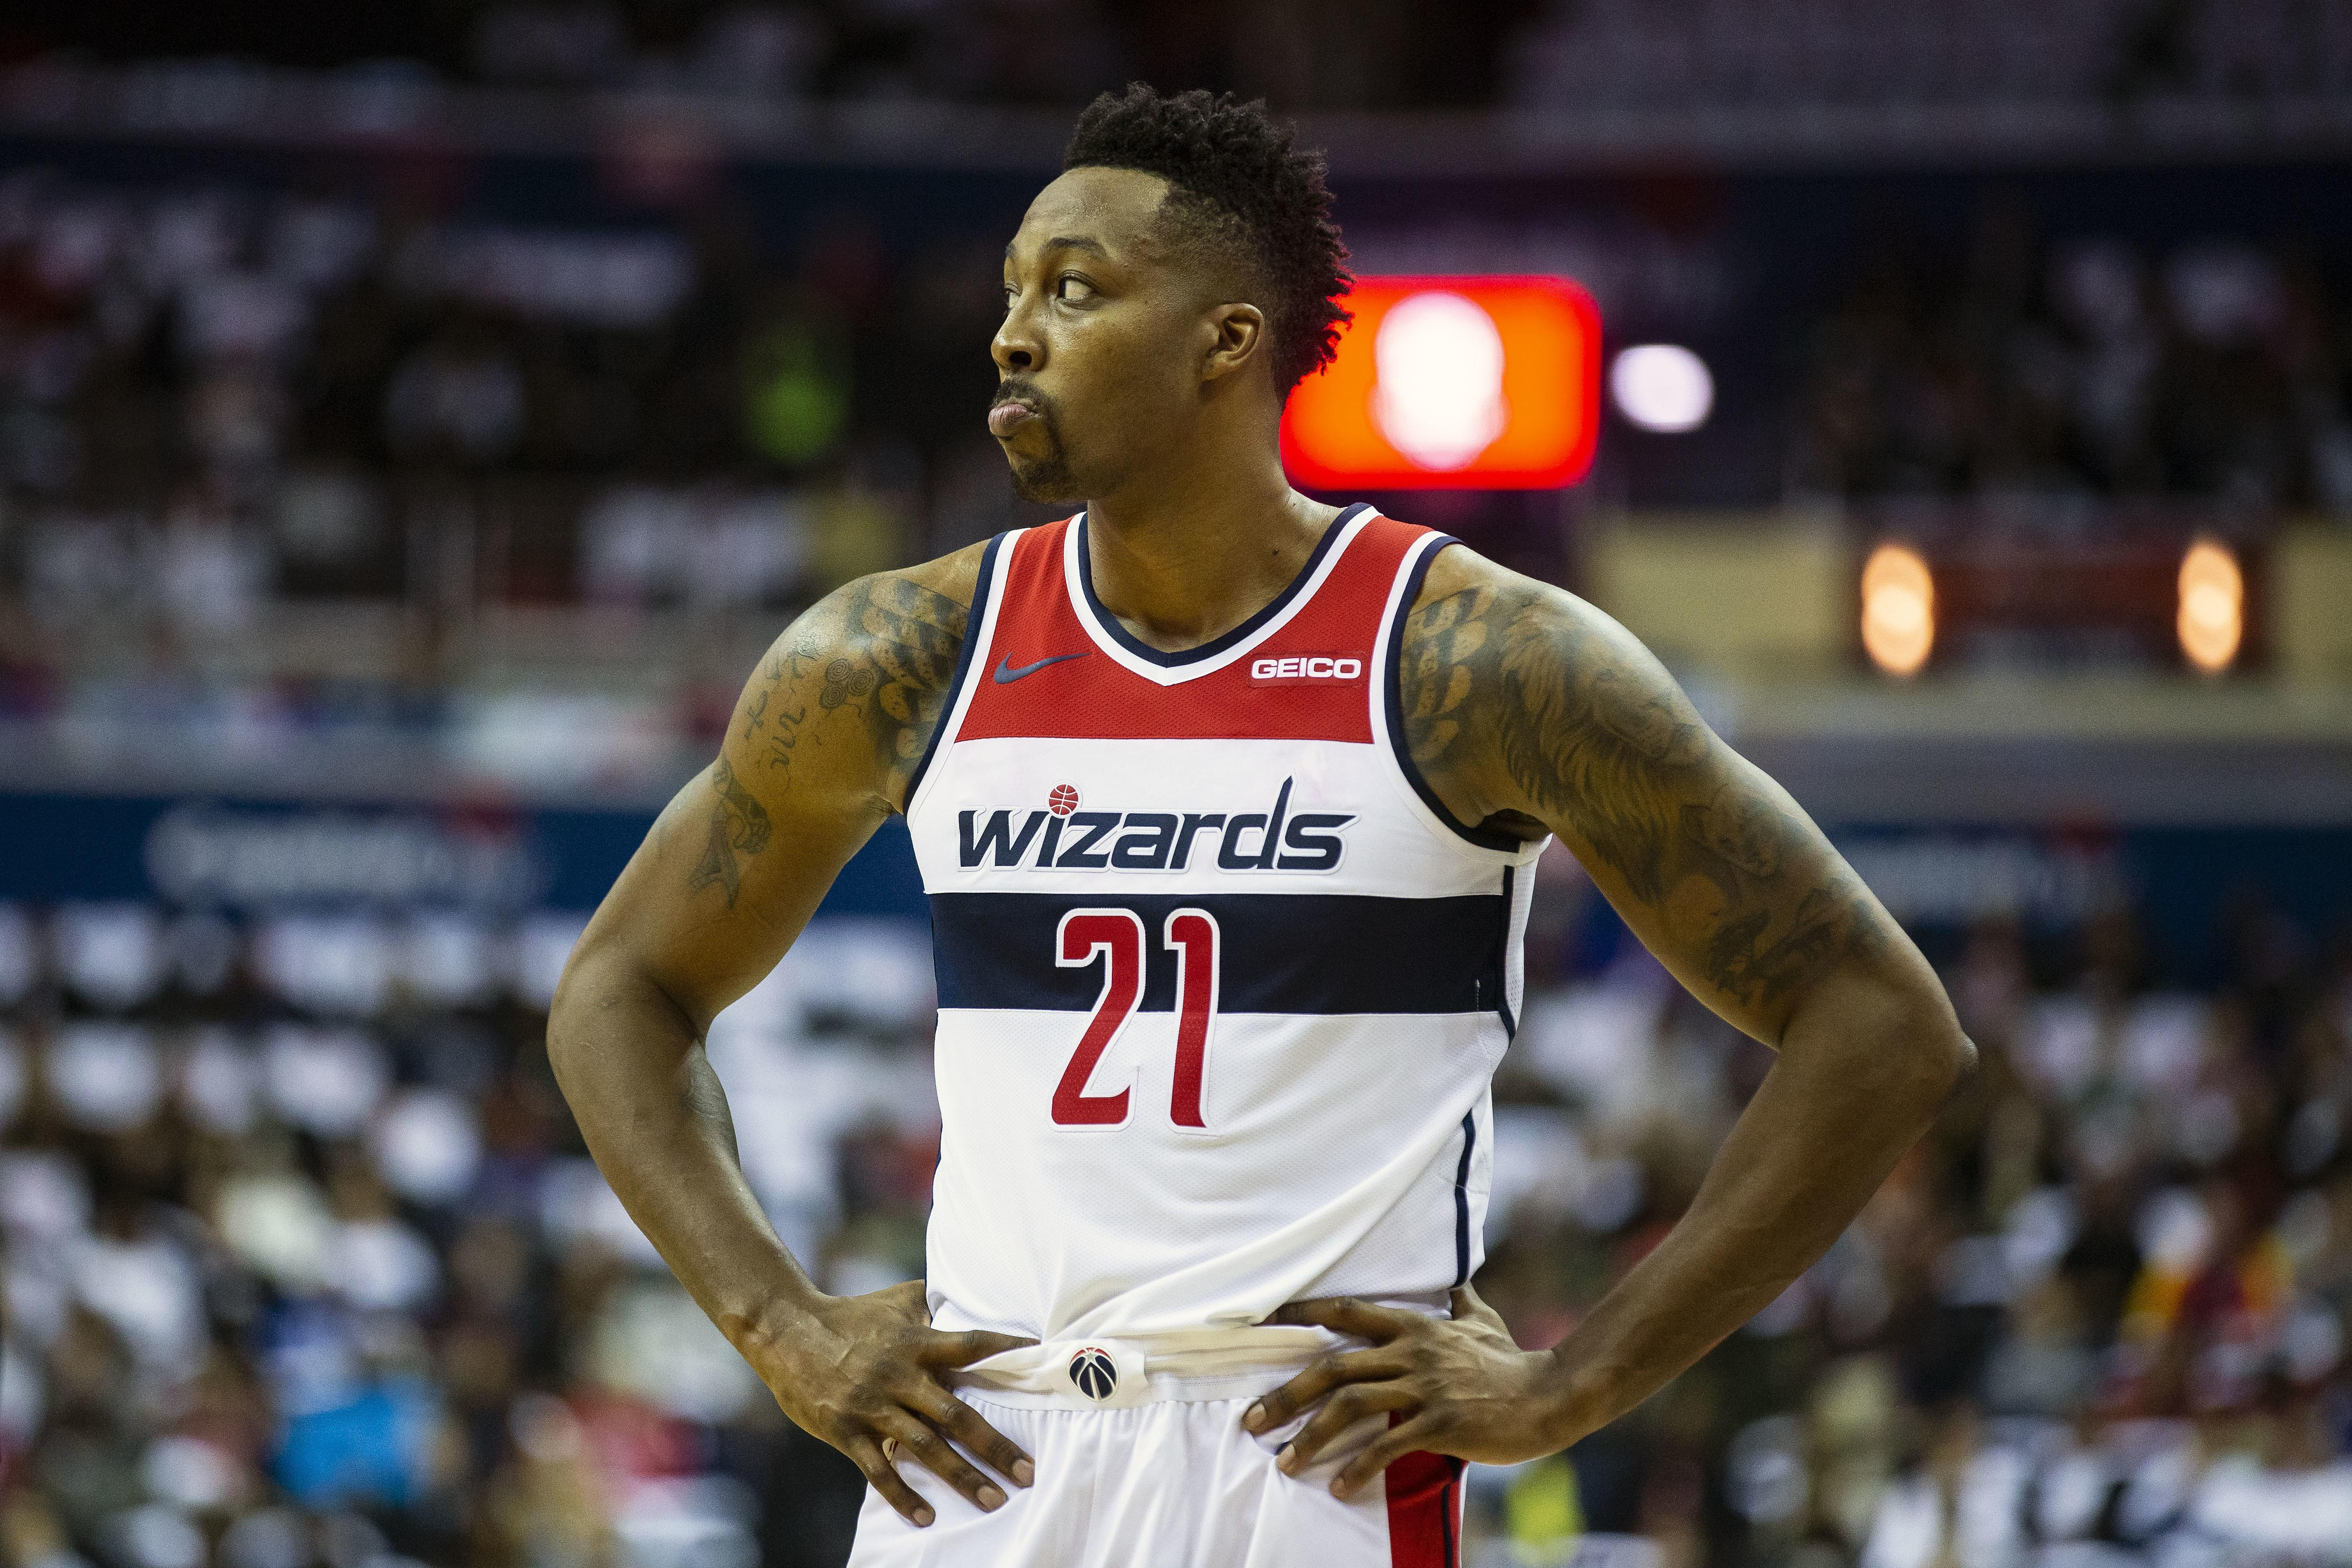 quality design 1ce74 57193 Wizards trade Dwight Howard to Grizzlies, acquire CJ Miles ...